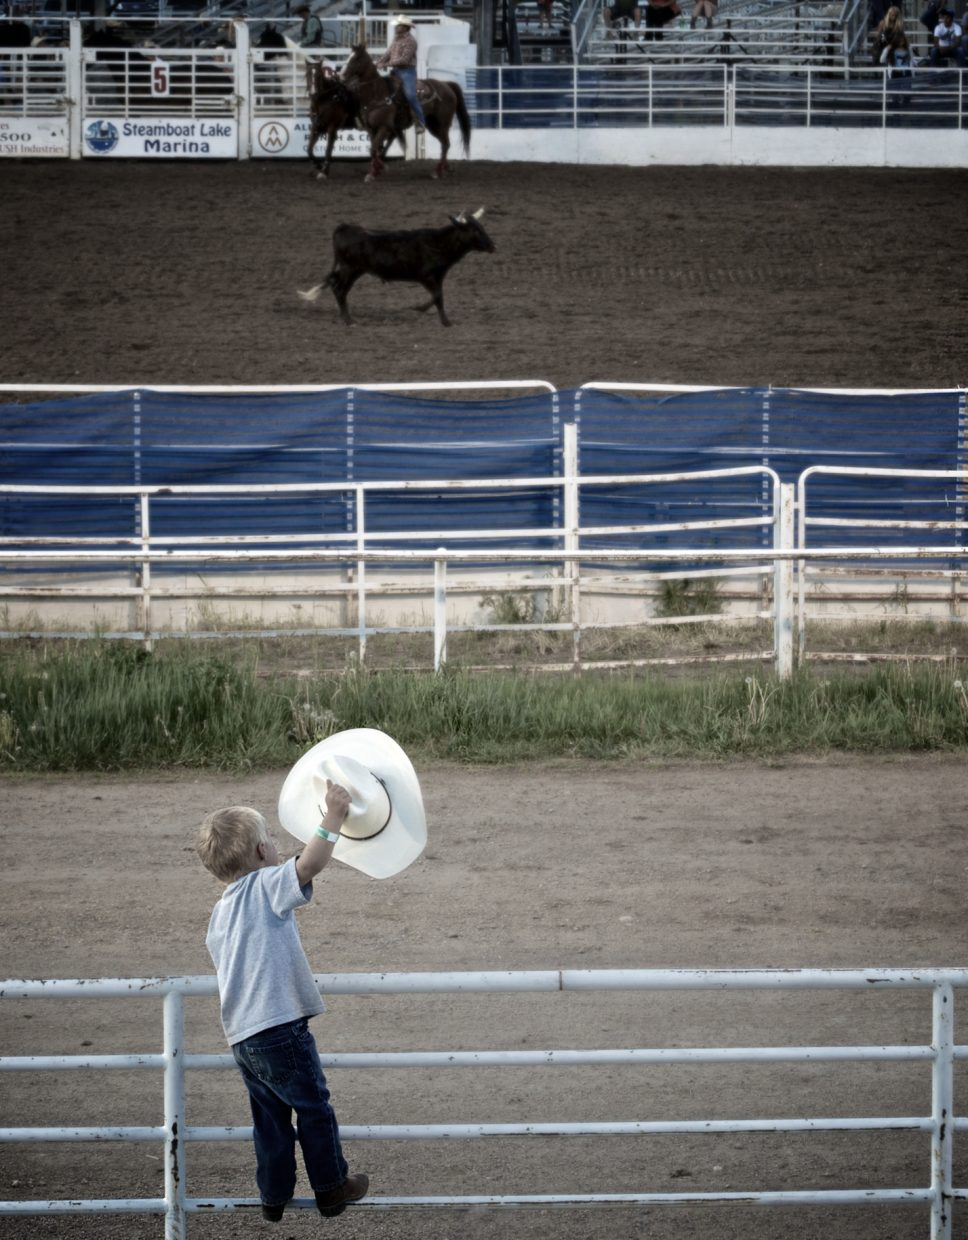 Enthusiastic little cowboy. Submitted by: Dana Stoner.